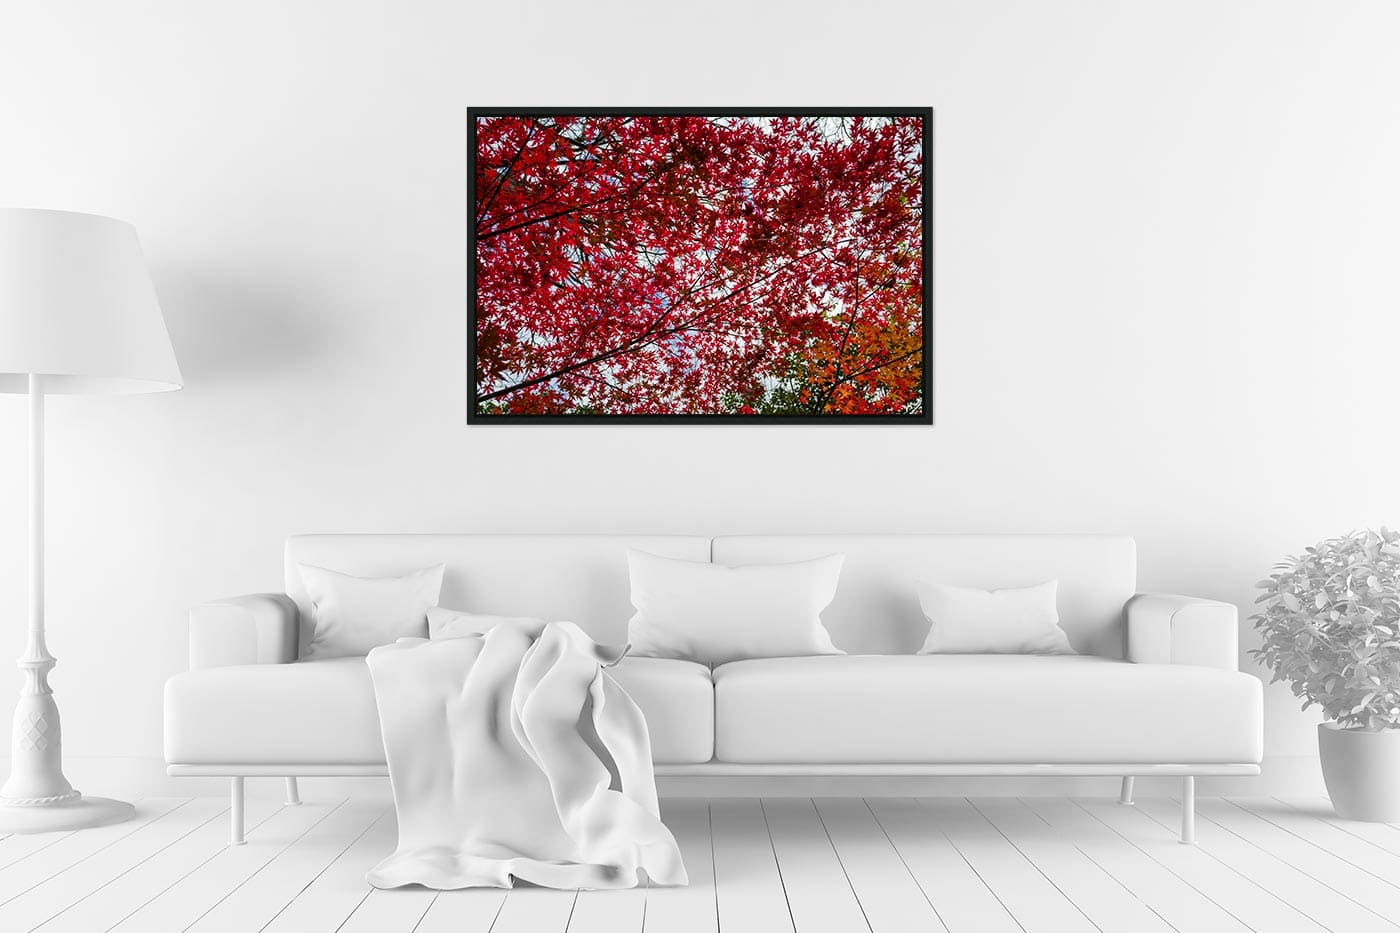 Caisse americaine 60x90 Small red tree leaves